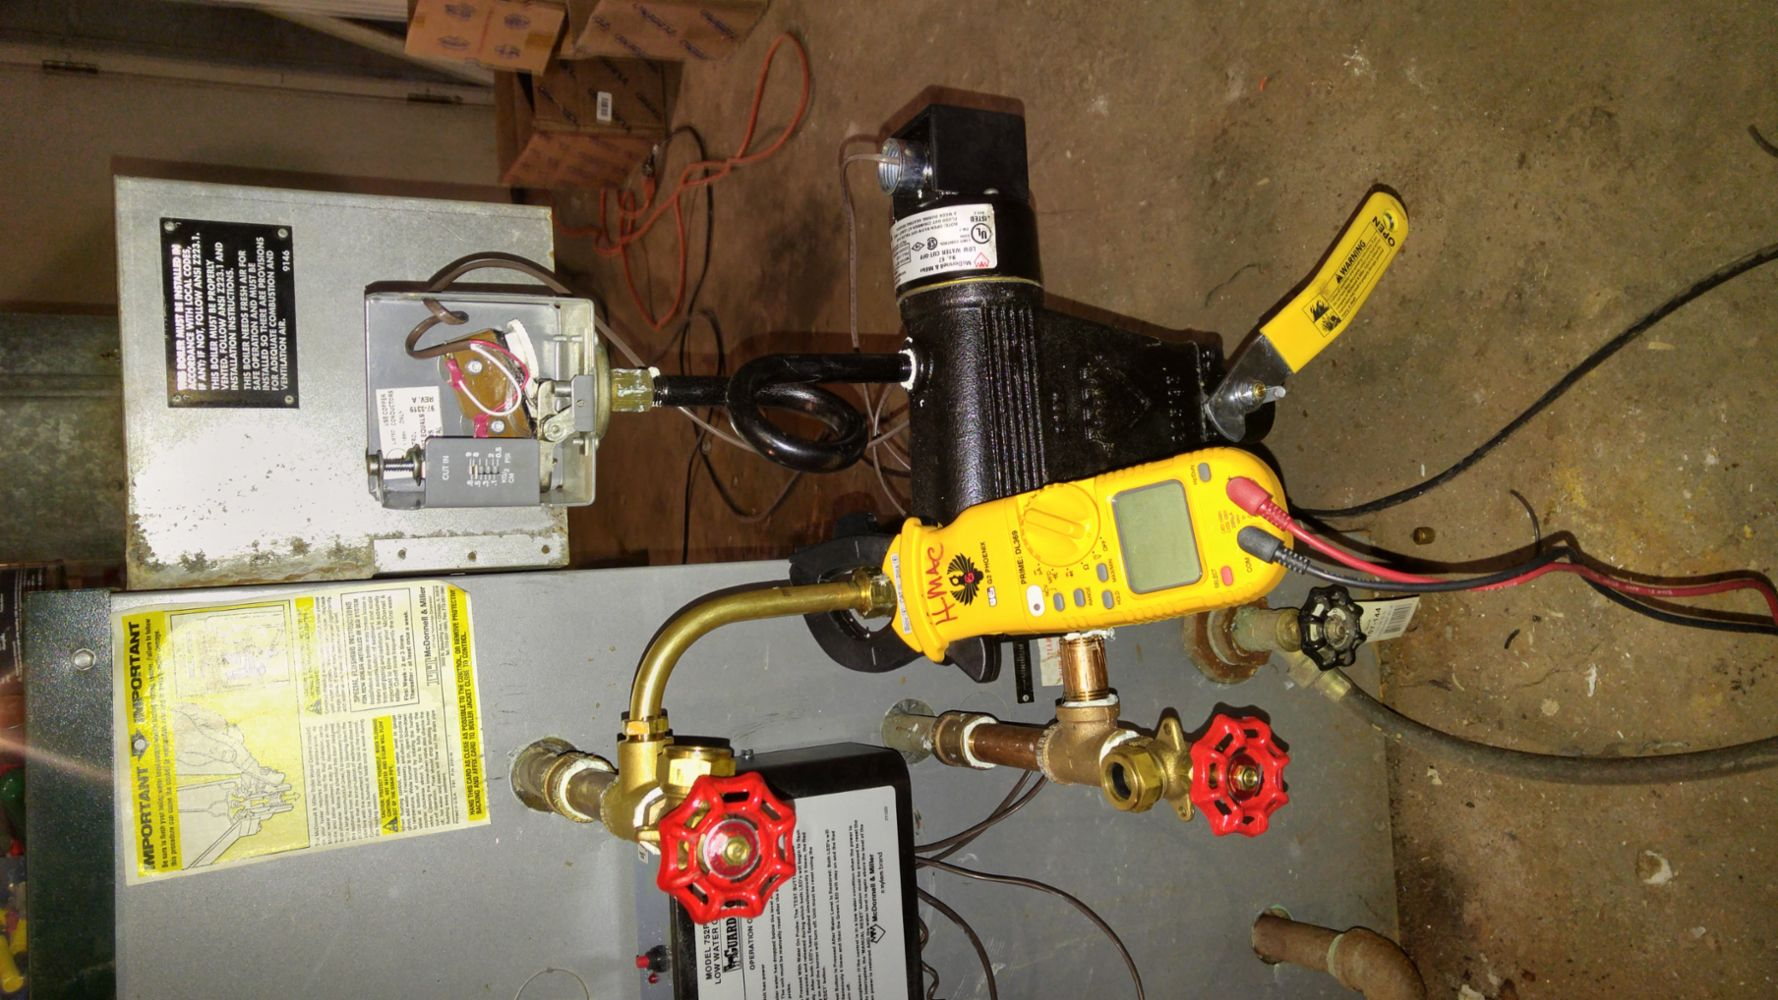 Boilers Service Munchkin Boiler Wiring Diagram User Manual 3 Gas Fired Warning Have This Serviced Inspected By A Qualified Technician Annually